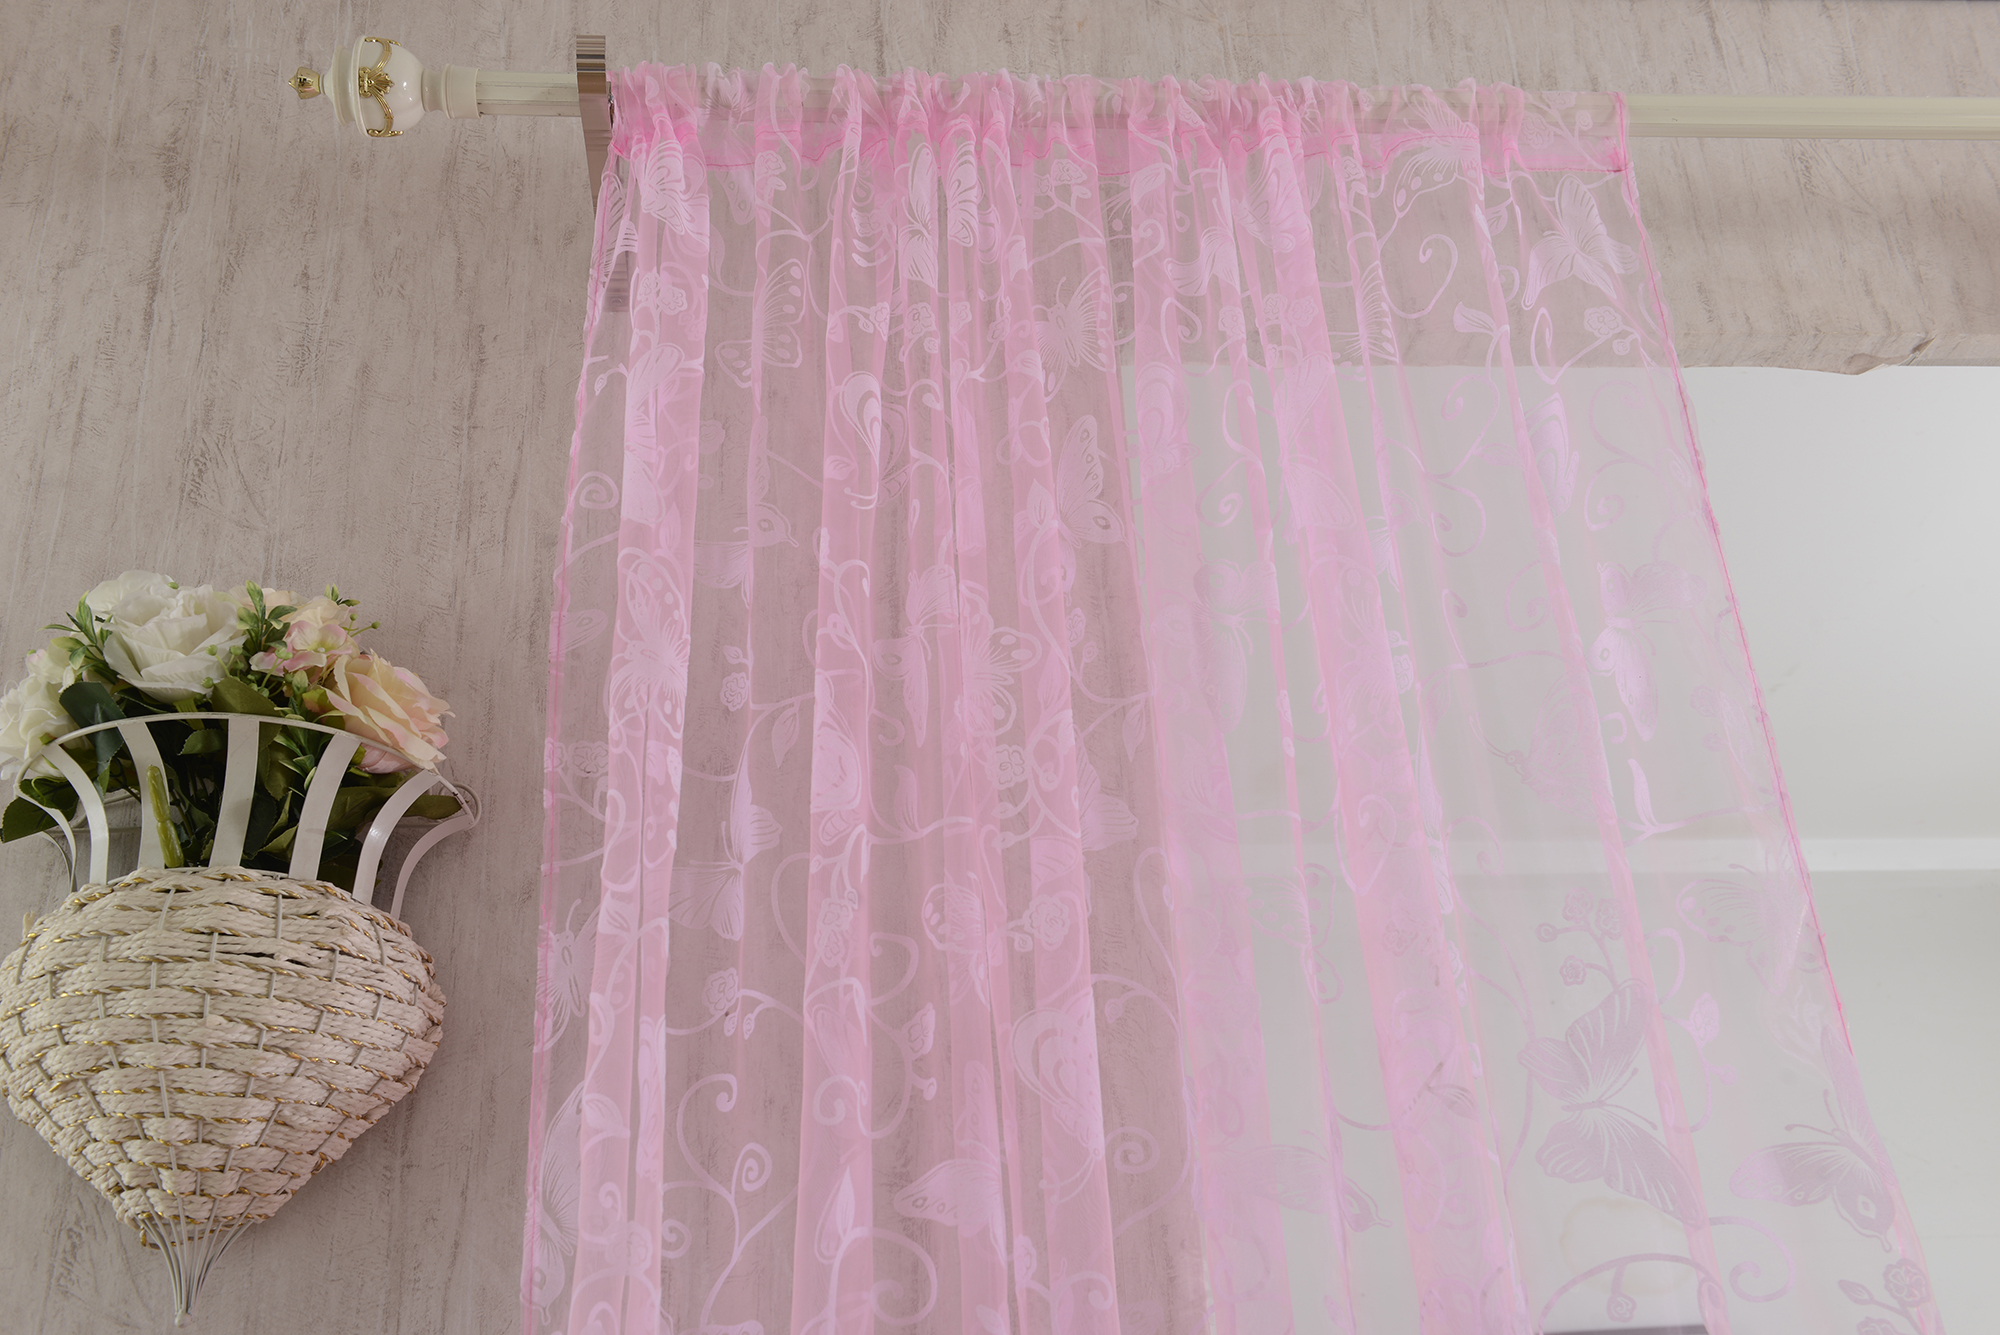 Flocking Butterfly Flowers Sheer Curtain Panel Window Tulle - Pink - 100*200cm